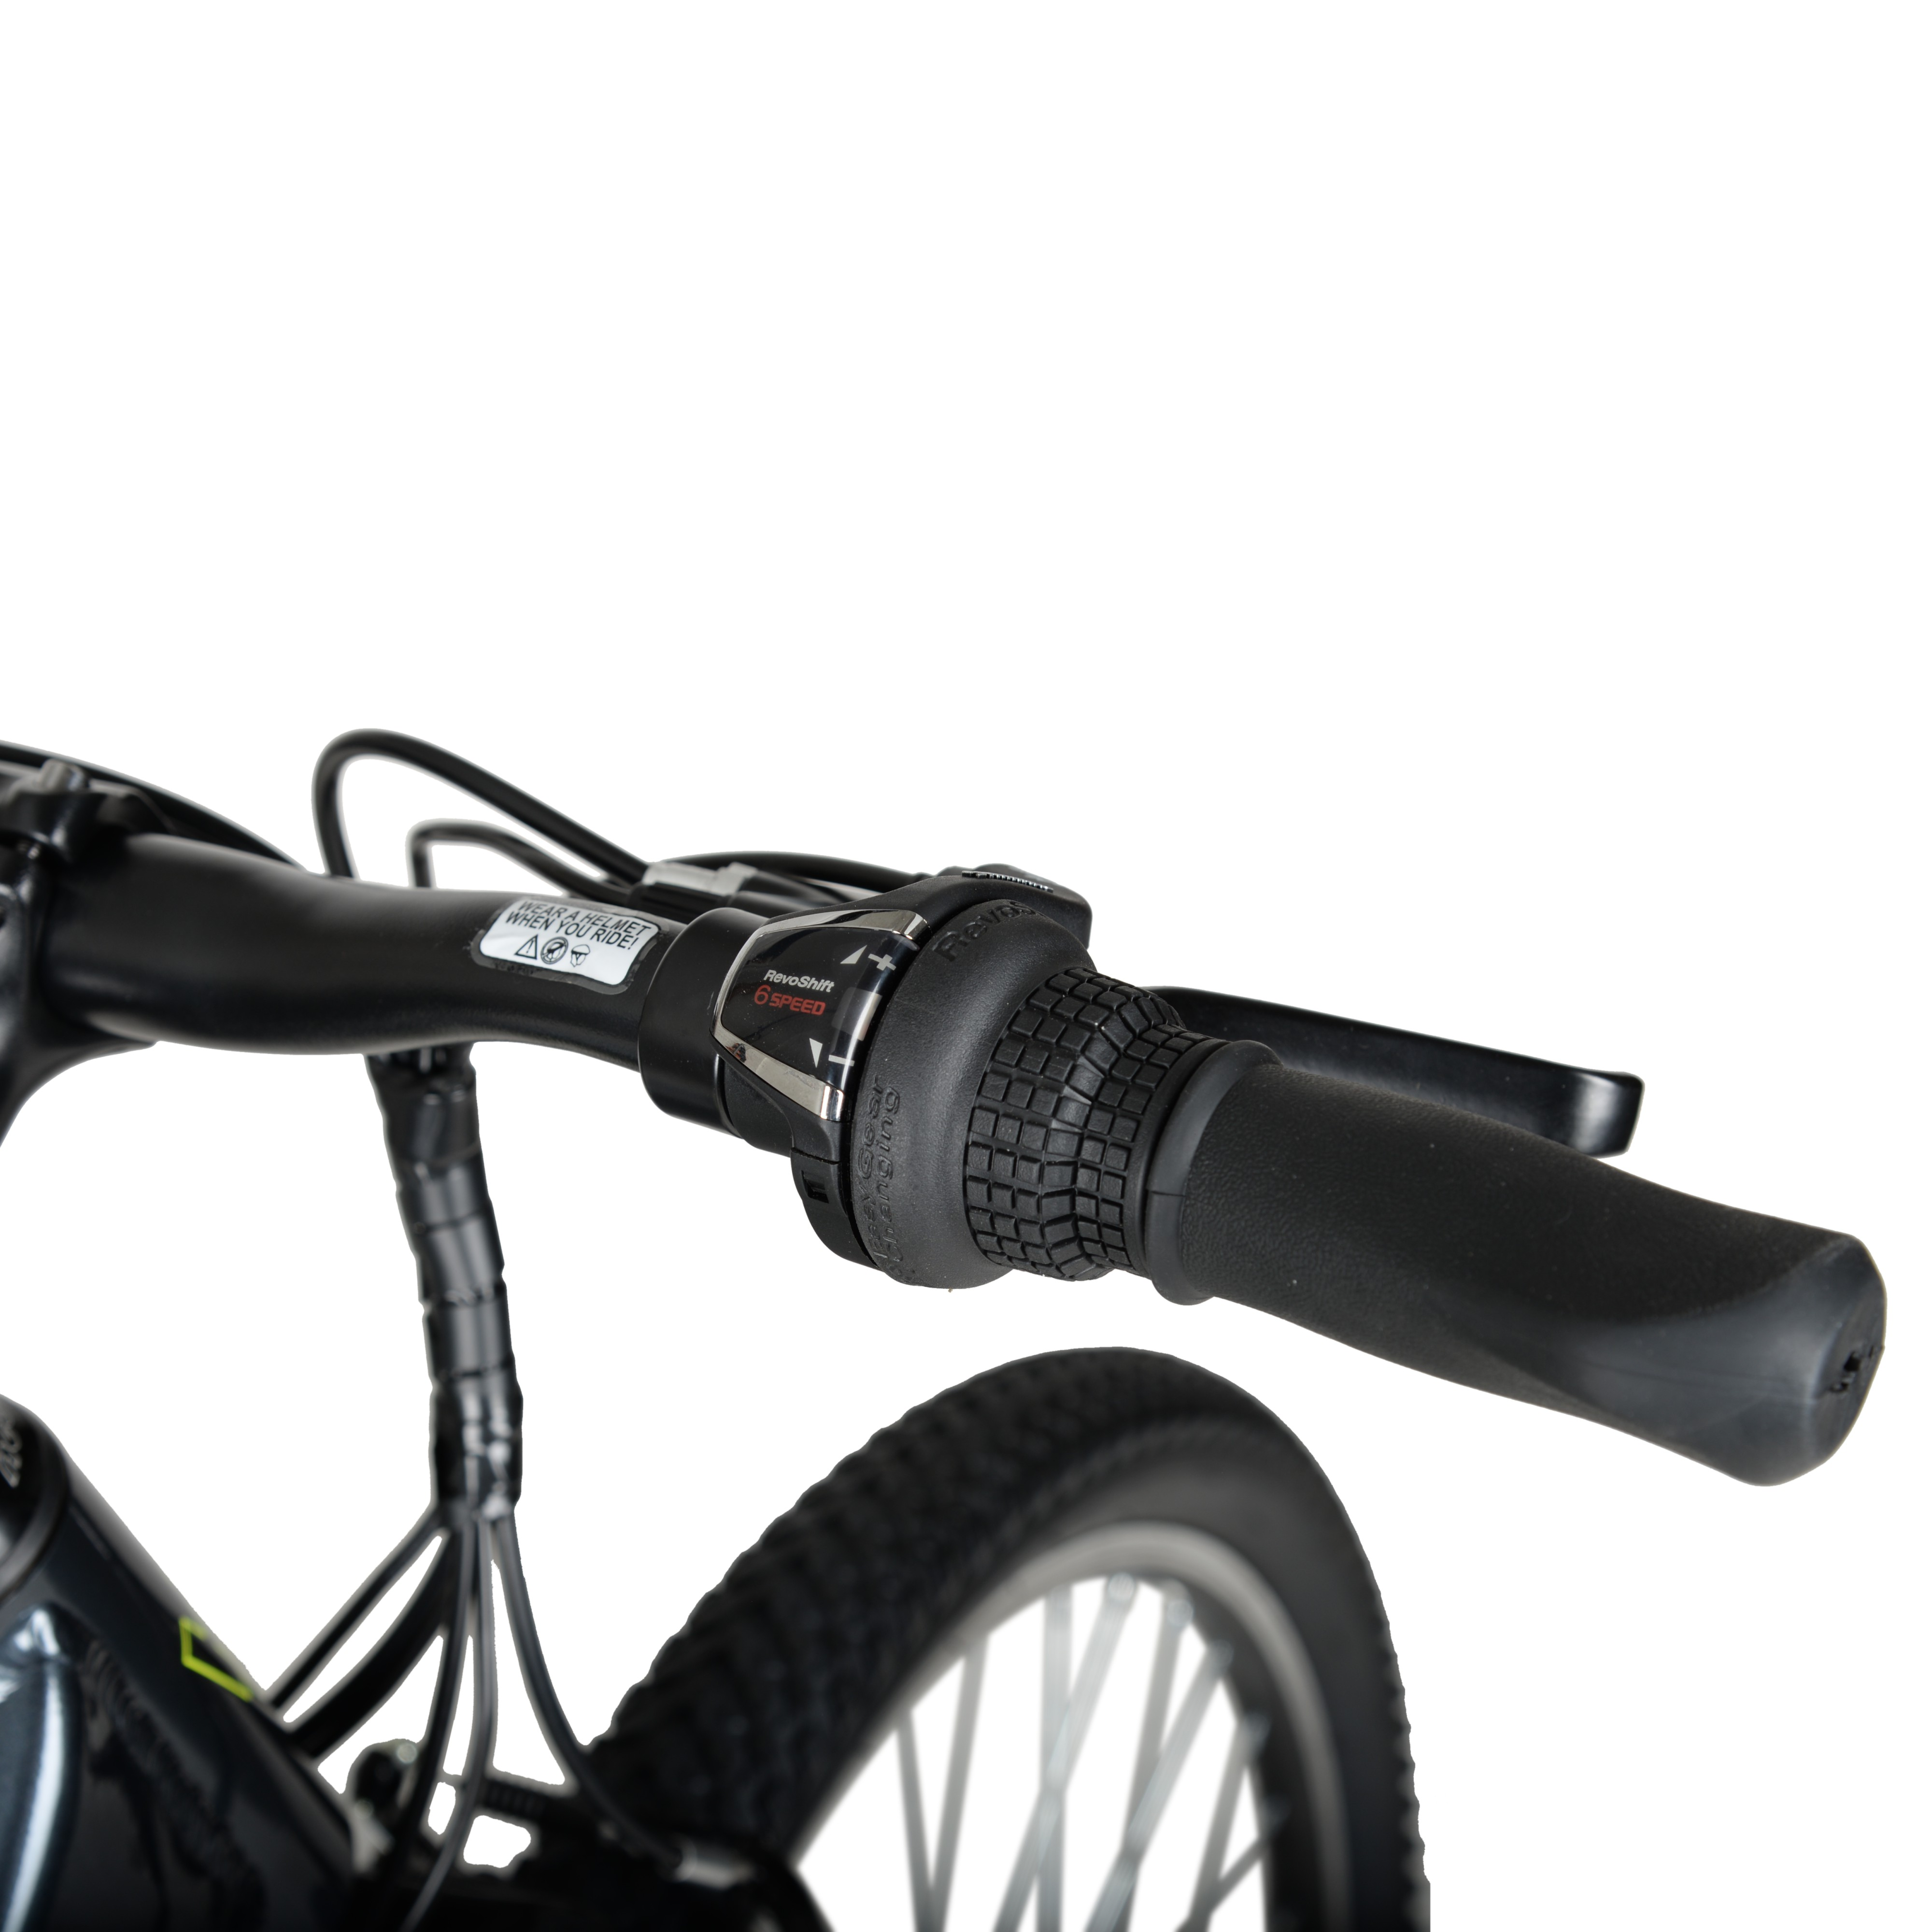 8086010a5f9 Electric Pedal-Assist Bikes - Up to 40% off! - Walmart.com